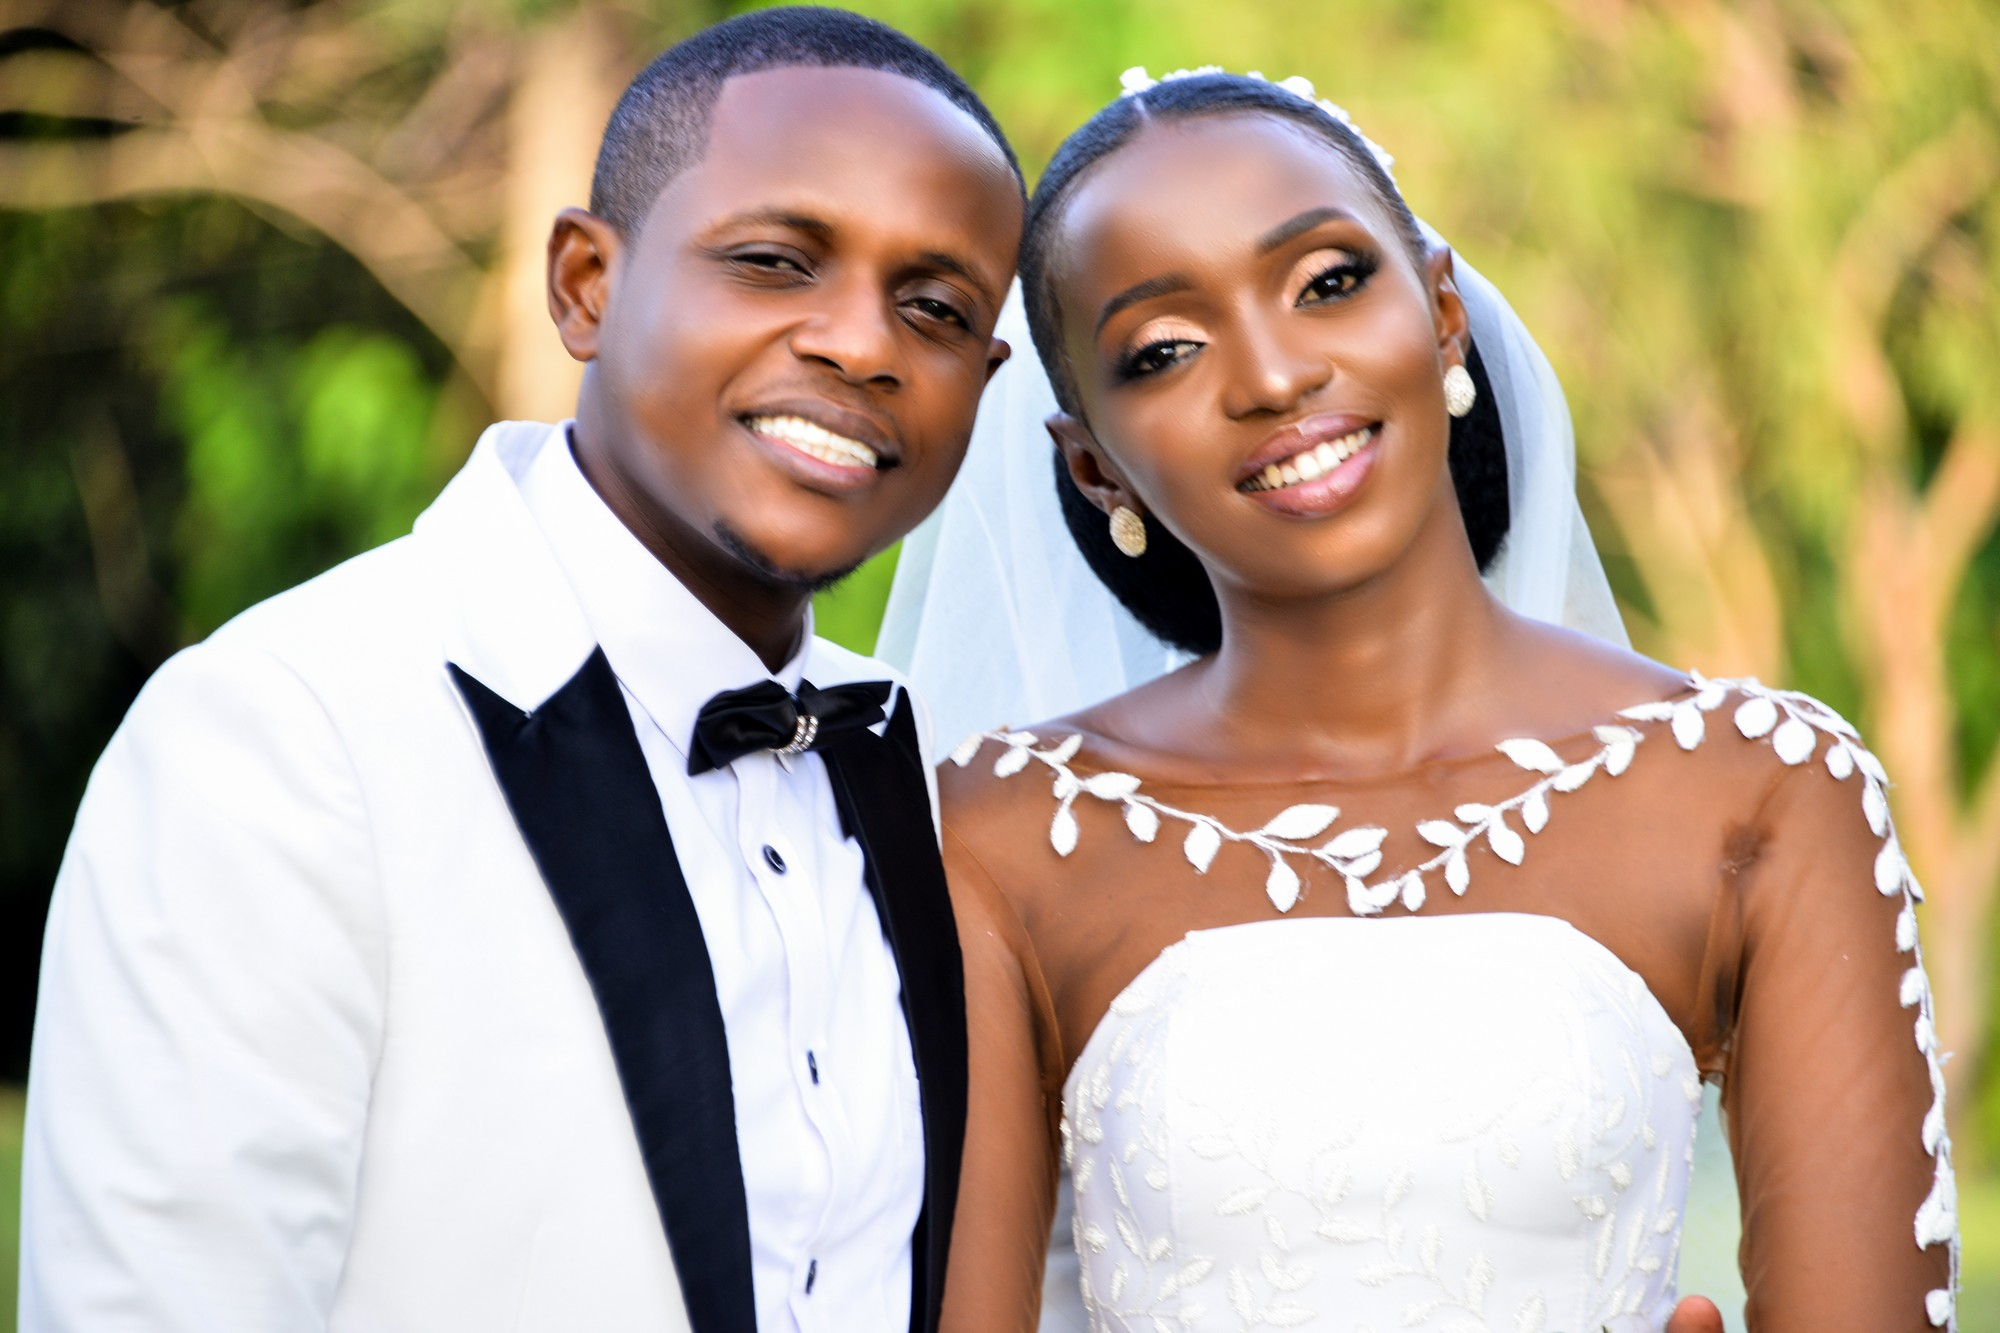 Kelvin & Violeth wedding Highlight